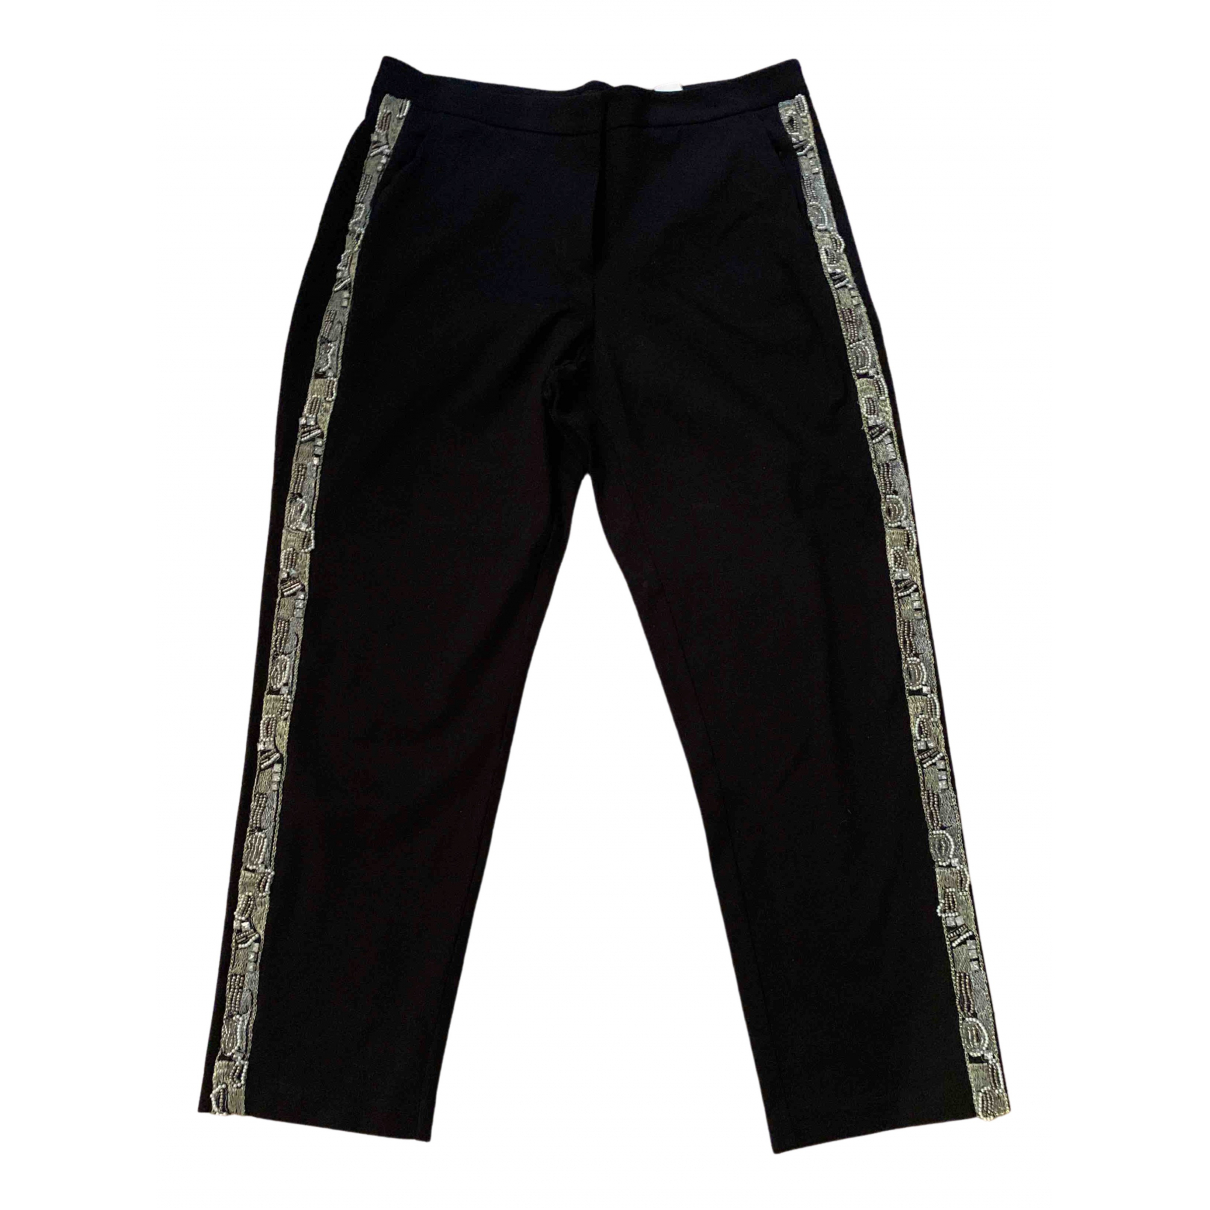 Juicy Couture \N Black Trousers for Women M International